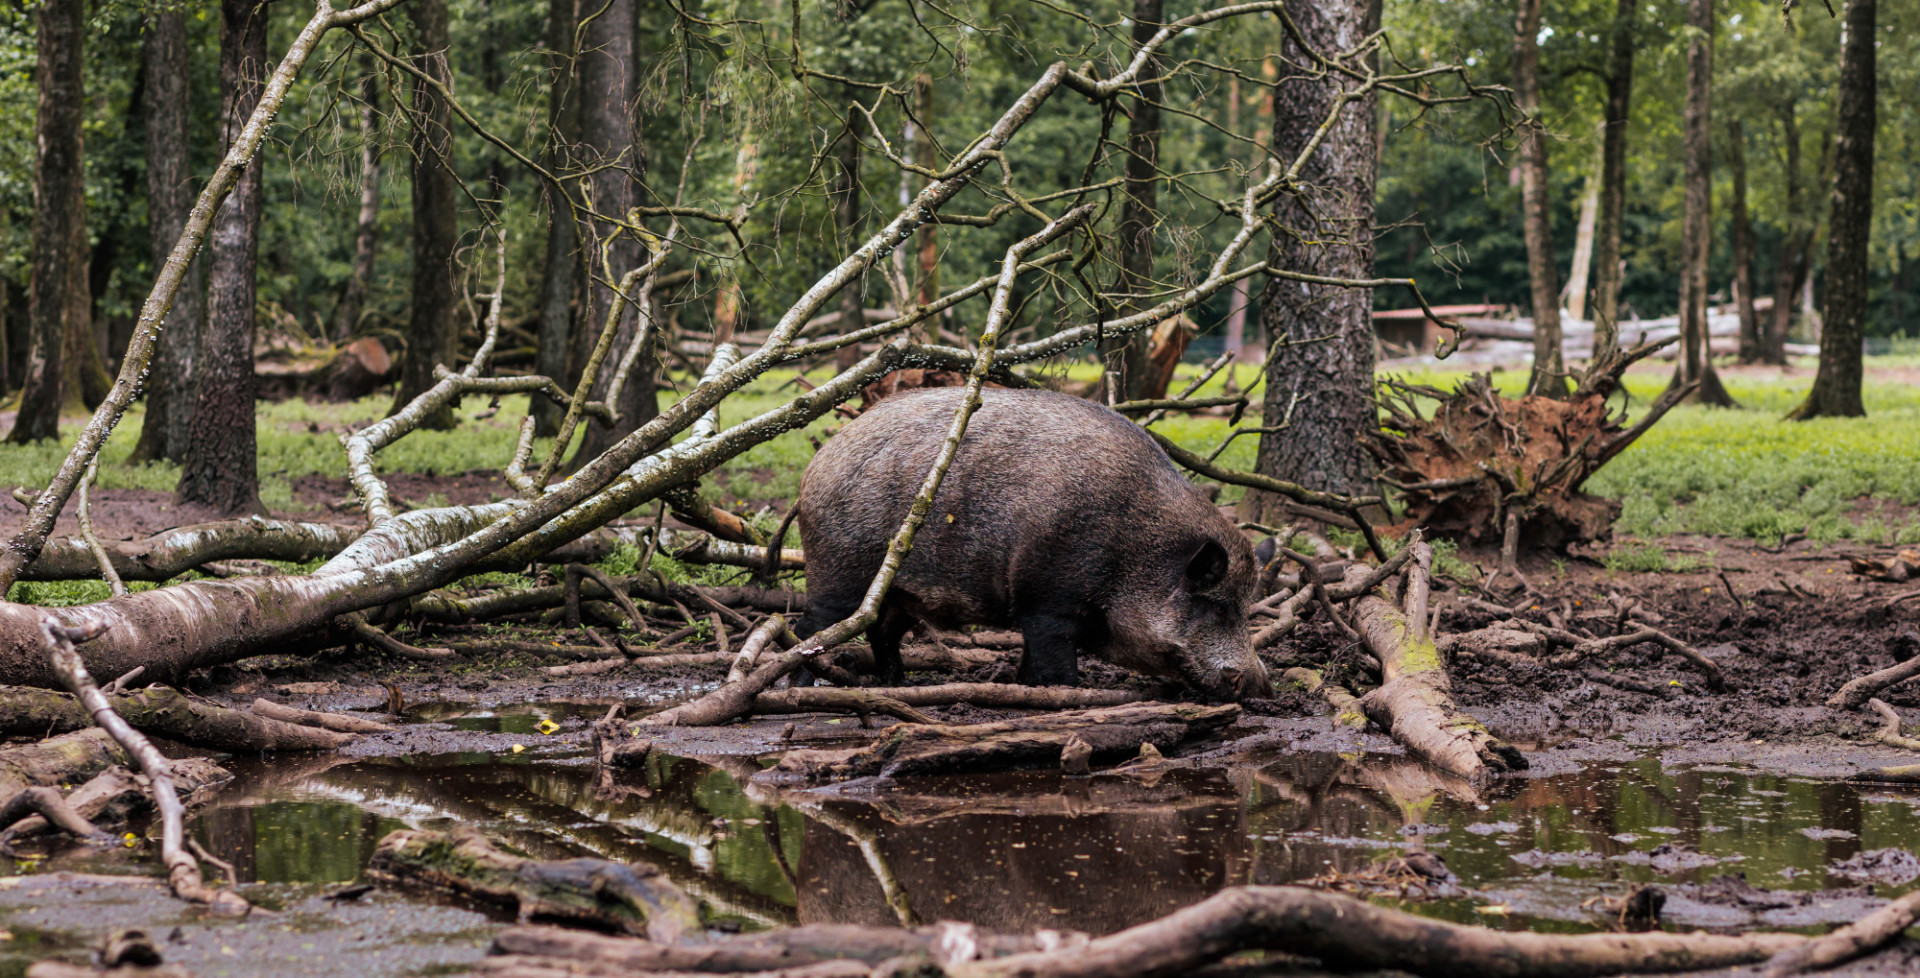 Male wild boar at a watering hole in the forest